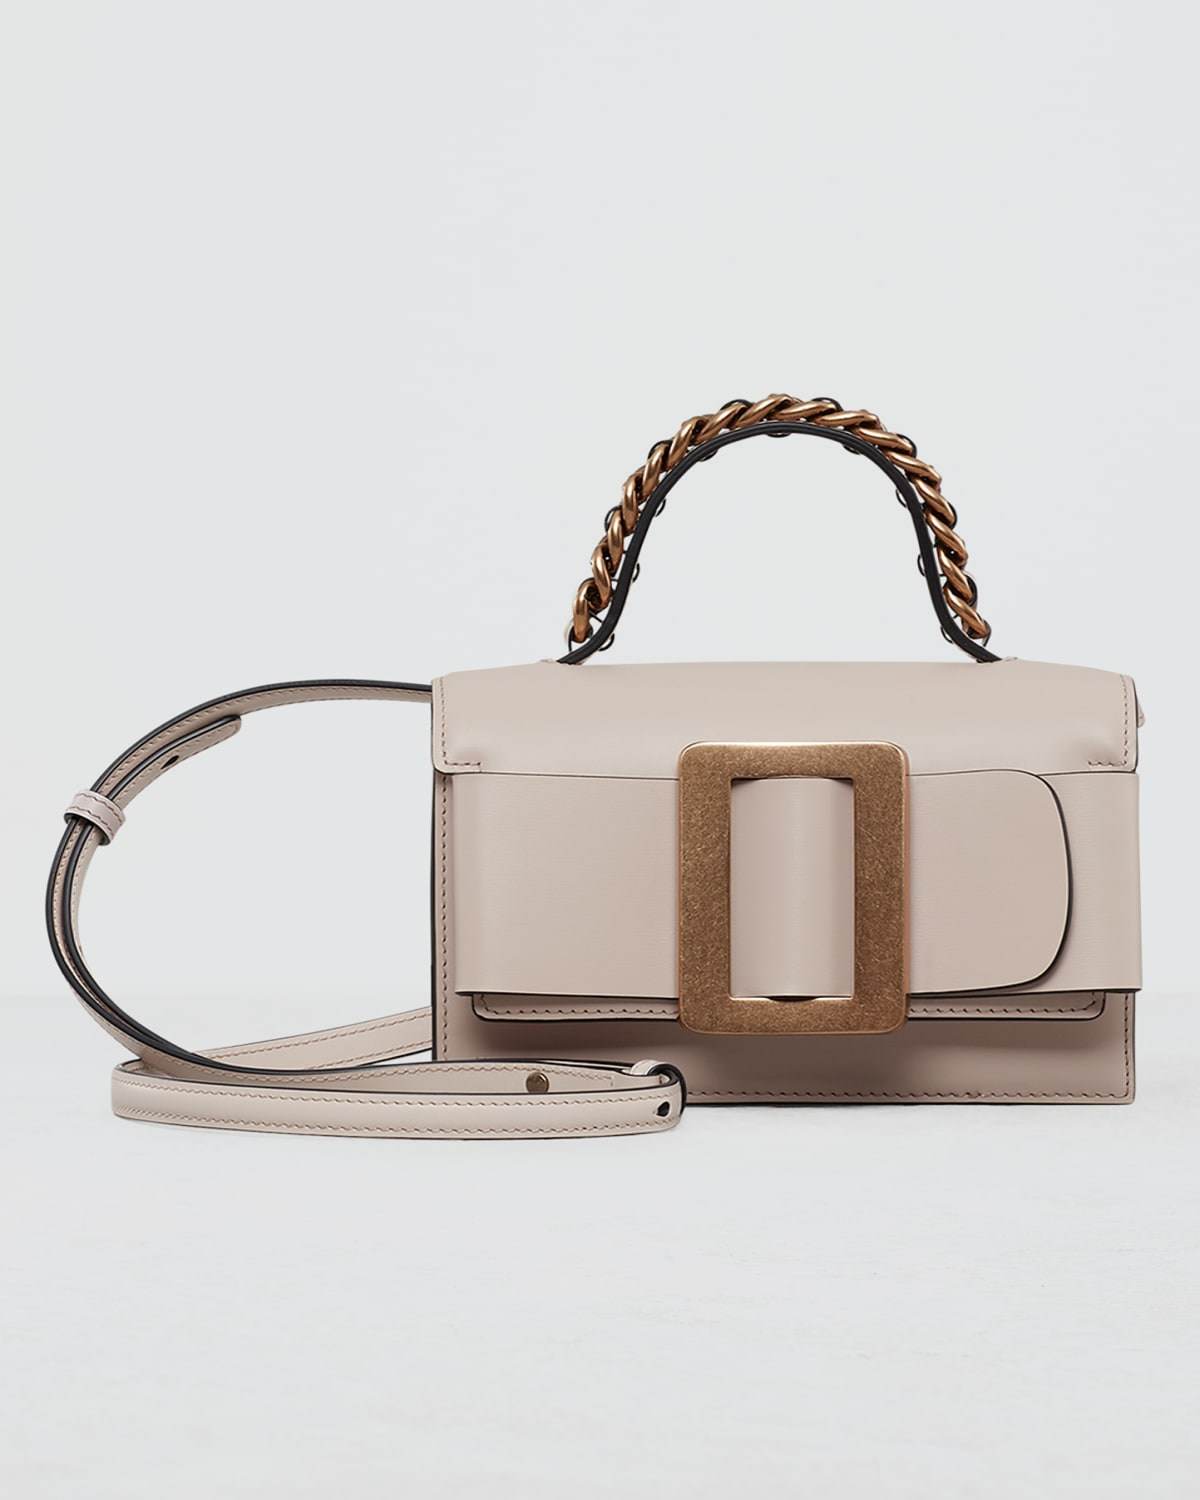 Fred 19 Chain and Leather Belted Top-Handle Bag